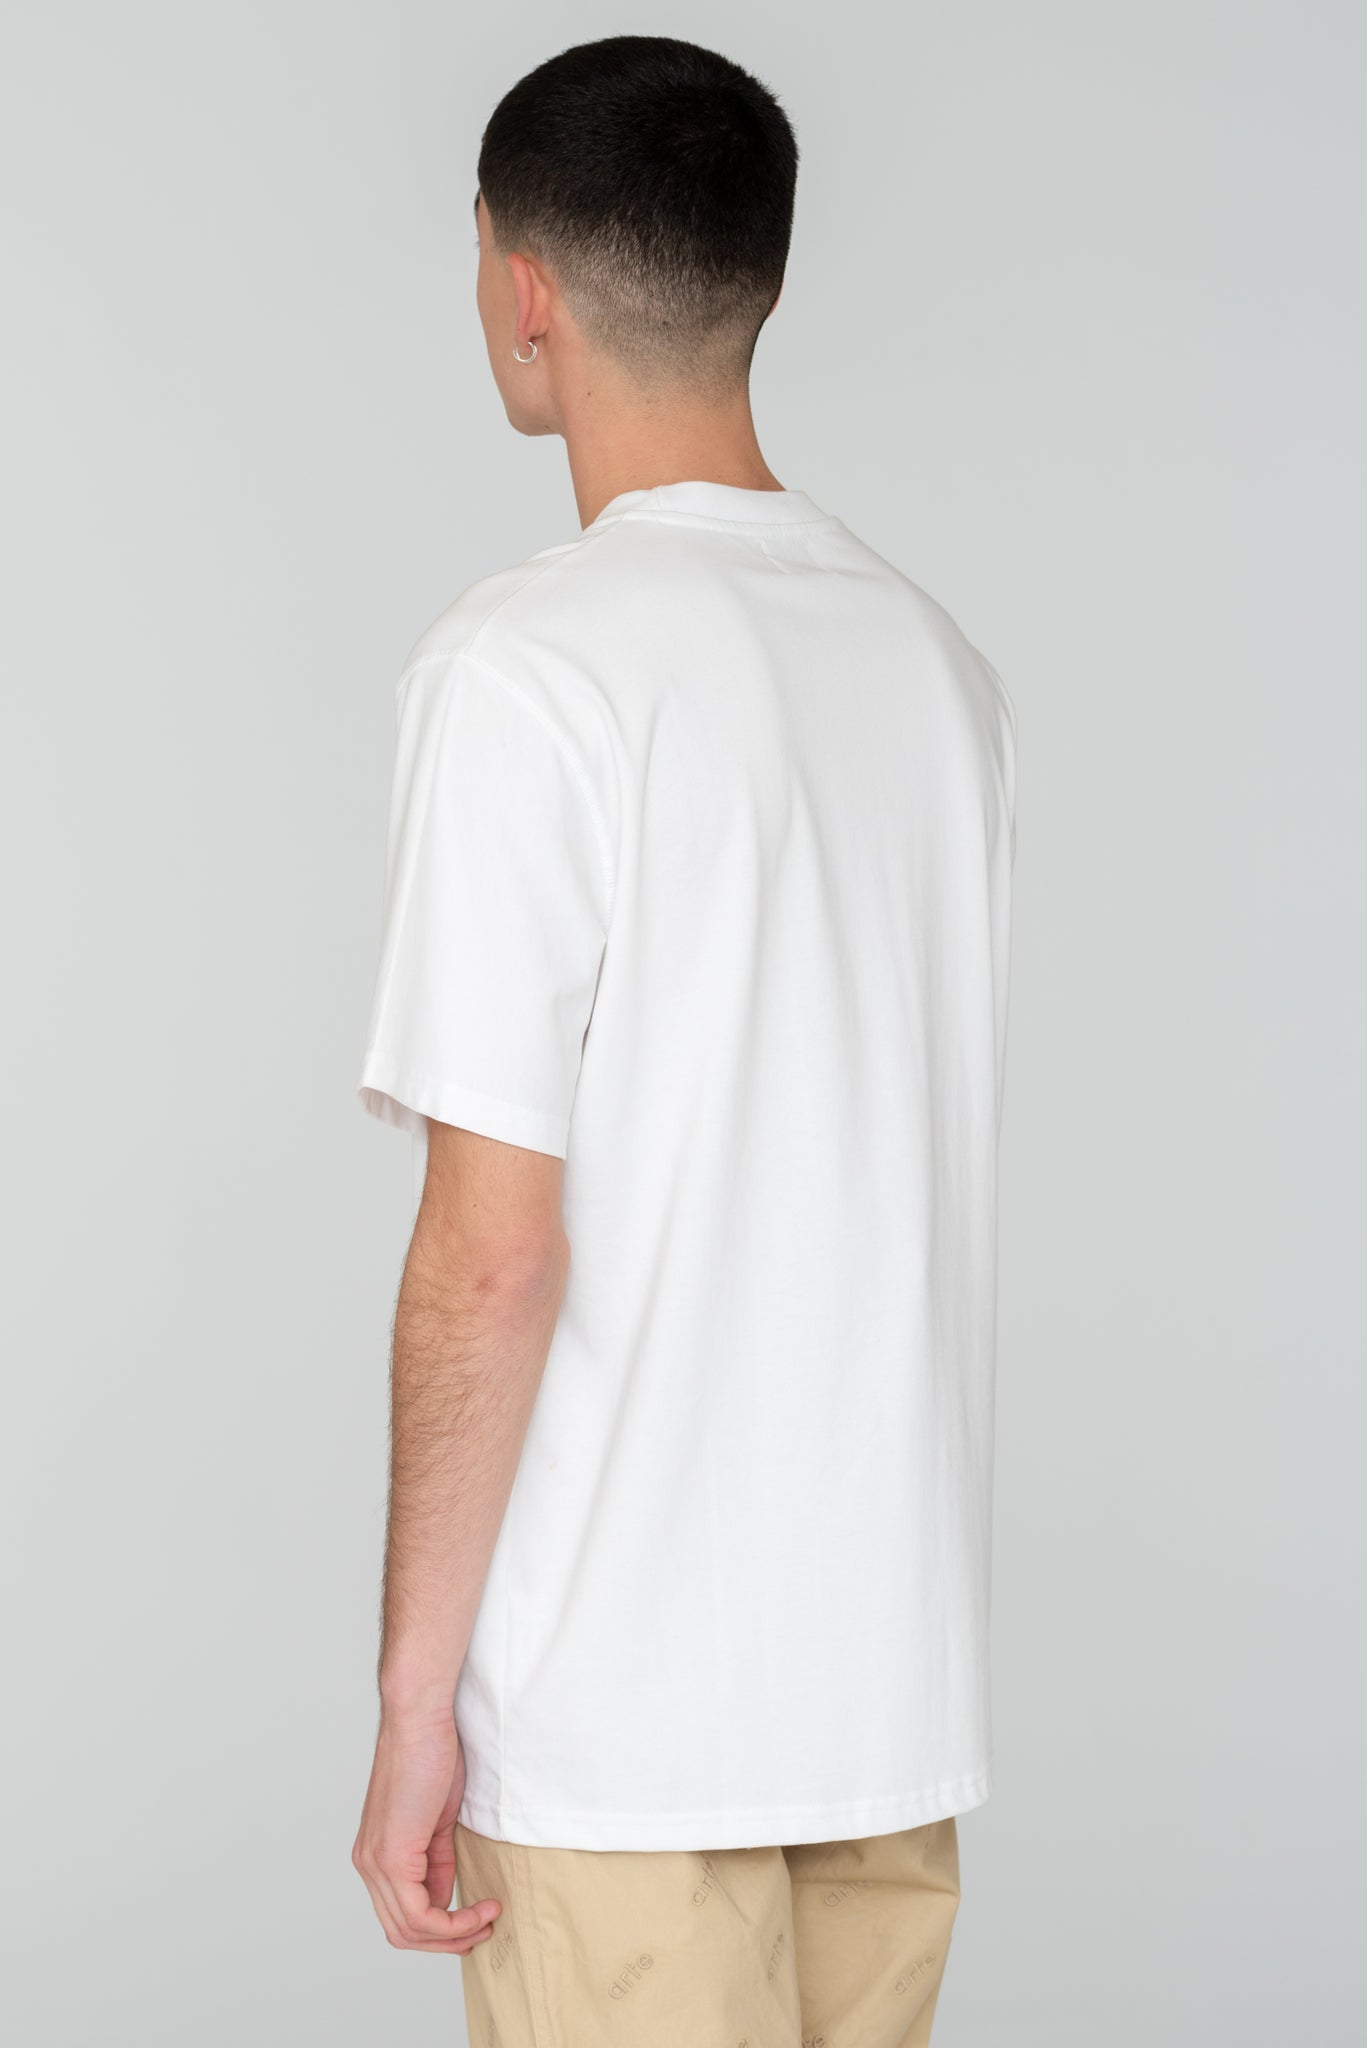 Troy Multi Logo White T-shirt - Arte Antwerp